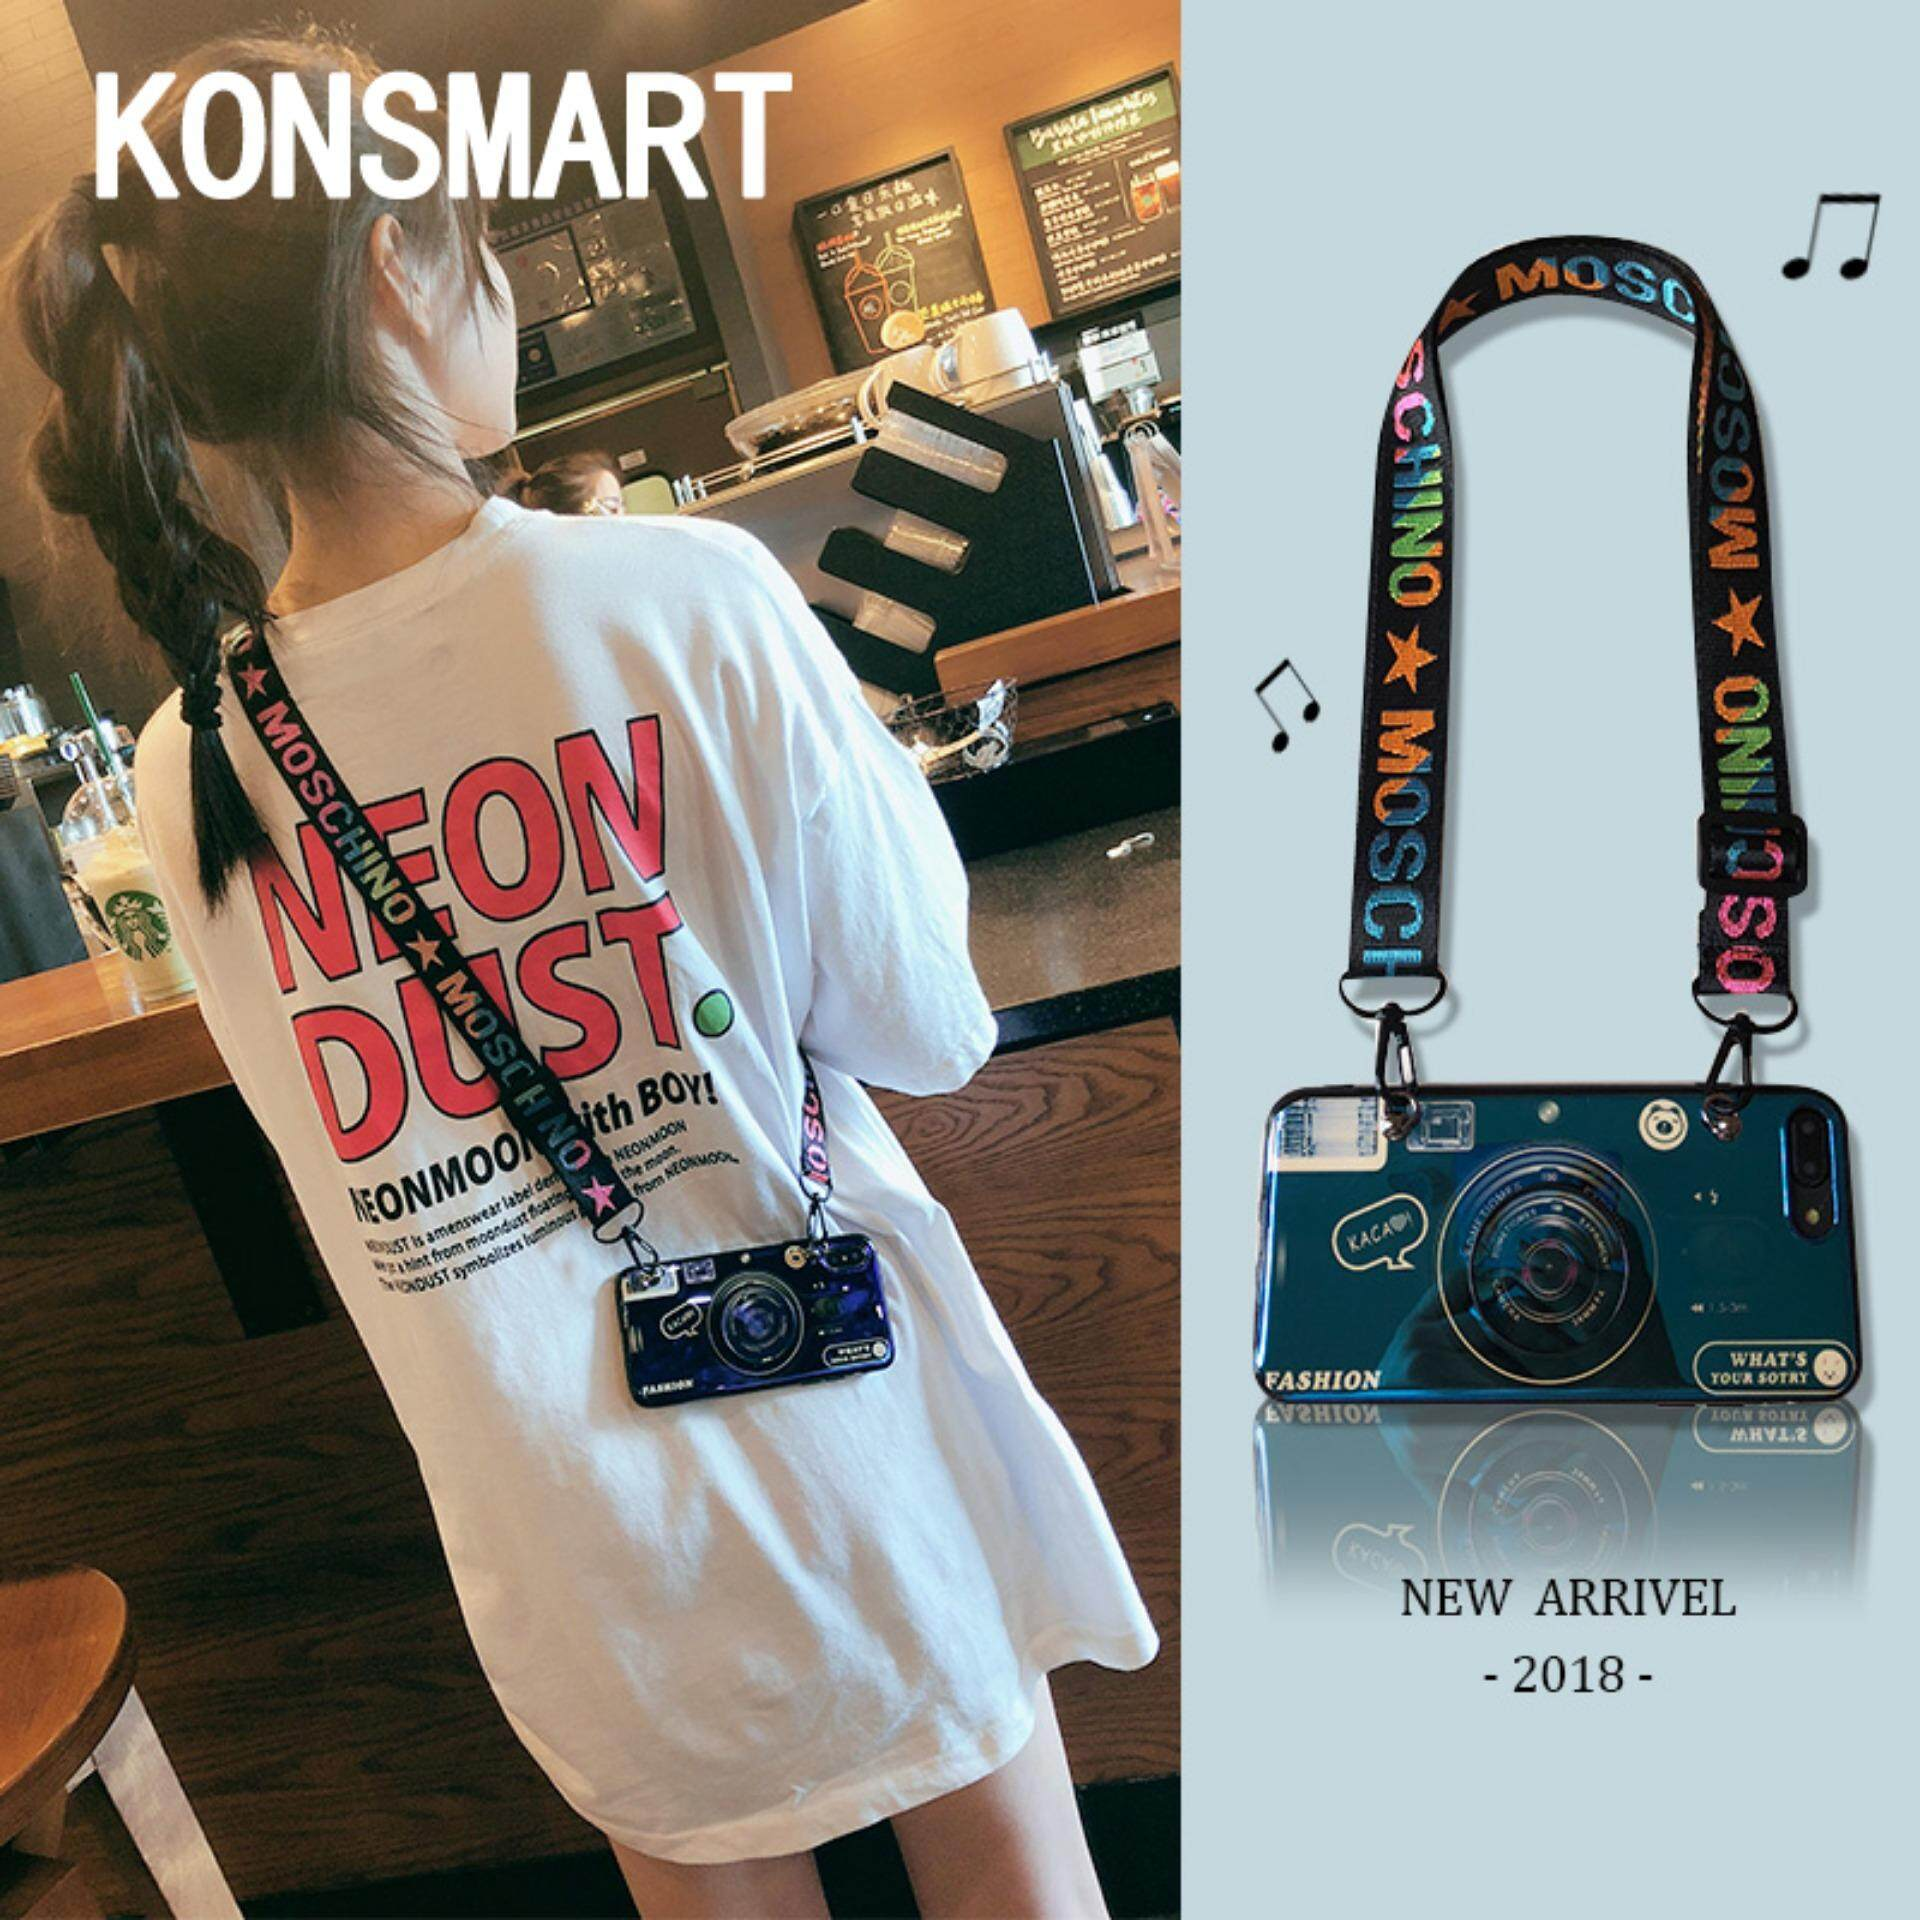 KONSMART Kamera Baru Bluray Casing Ponsel dengan Tempat Ponsel untuk OPPO A37 A39 A57 A59 A71 A73 A77 A79 A83 dengan Adjustable Crossbody lanyard Lembut Cover Fashion Coques untuk OPPO F1S F2 F3 F5 F7 F9 A7 A3 A3S A5S Findx